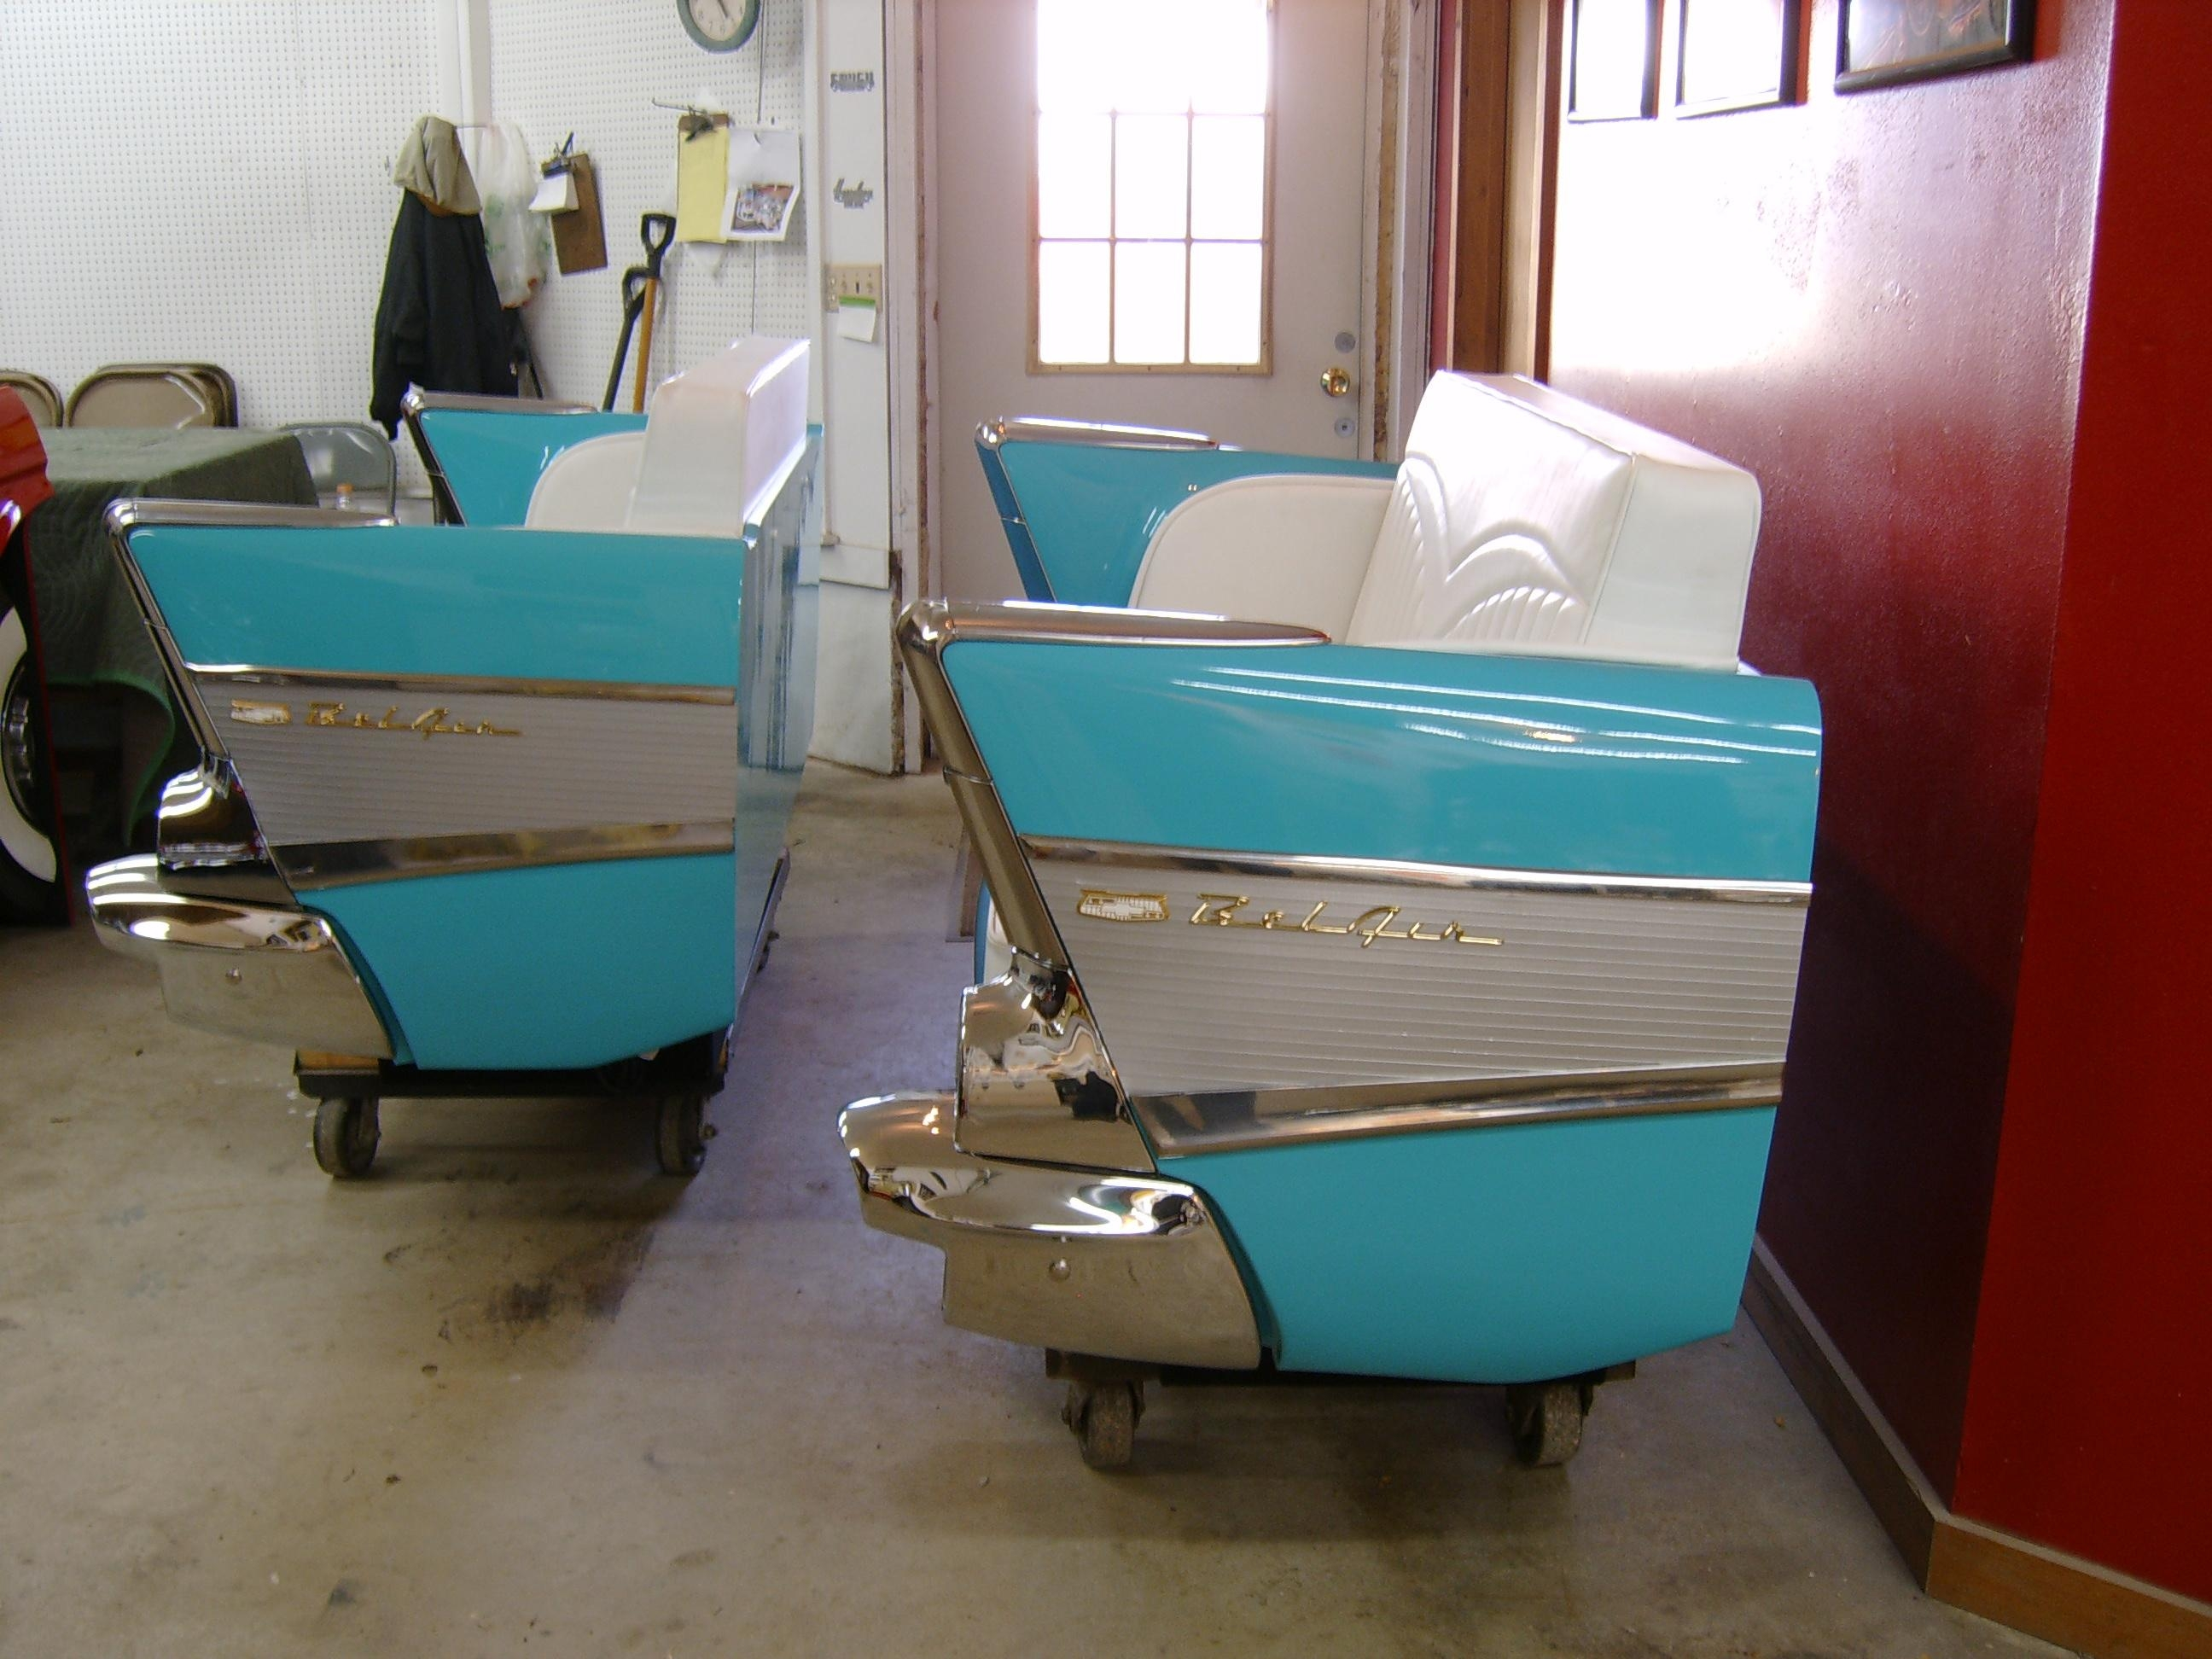 Furniture: Alluring Retro Classic Blue Leather Car Teal Couch With Pertaining To Retro Sofas And Chairs (Image 9 of 20)